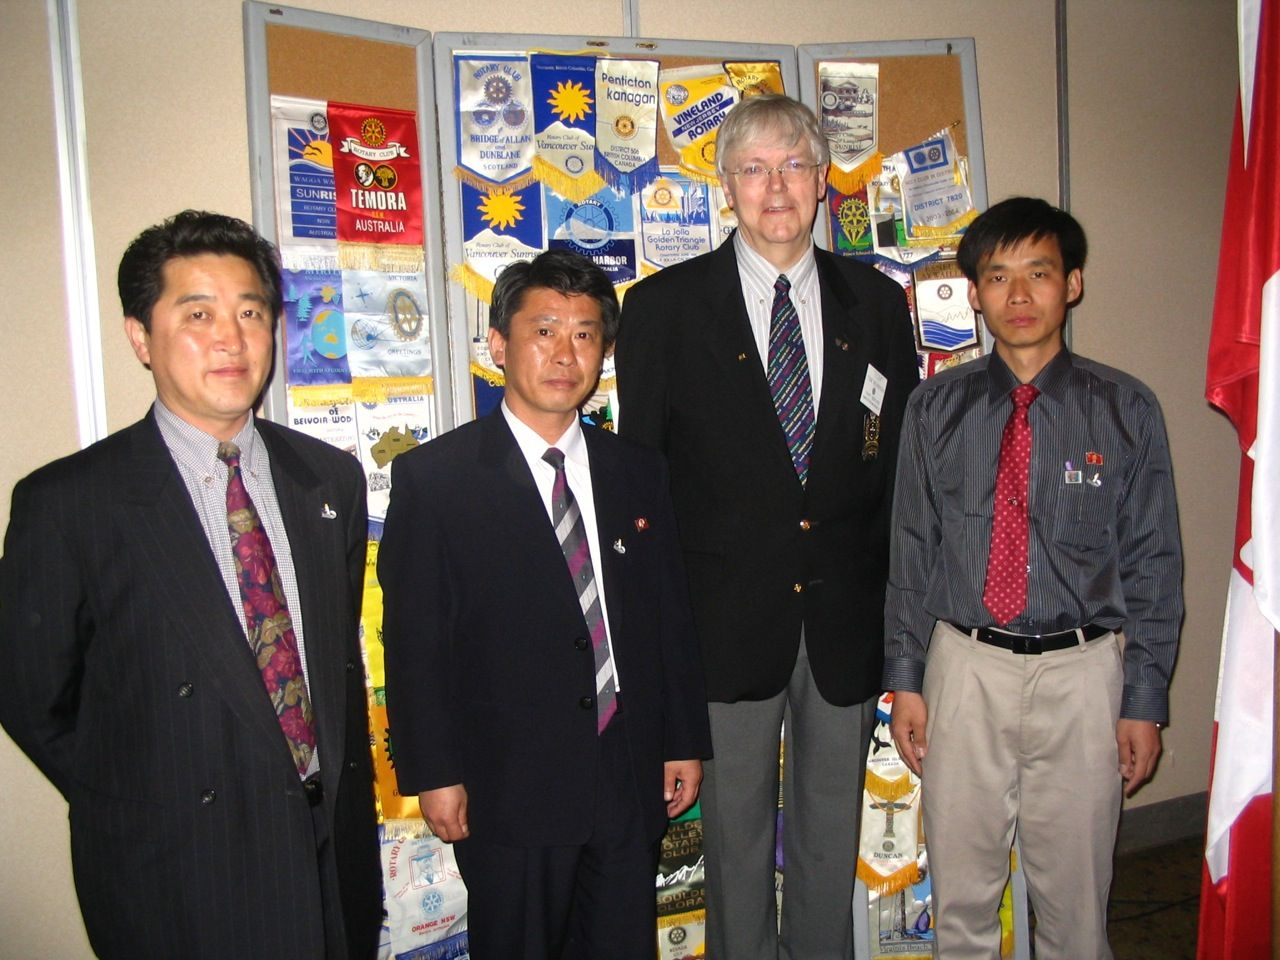 PDG Tom Wilkinson from the Charlottetown Royalty Rotary club has led and supported several of our projects in the DPRK. In this picture he welcomes Dr. Jong Sang Hun and a team of DPRK agronomists to visit Eastern Canada to explore our potato growing and harvesting expertise.